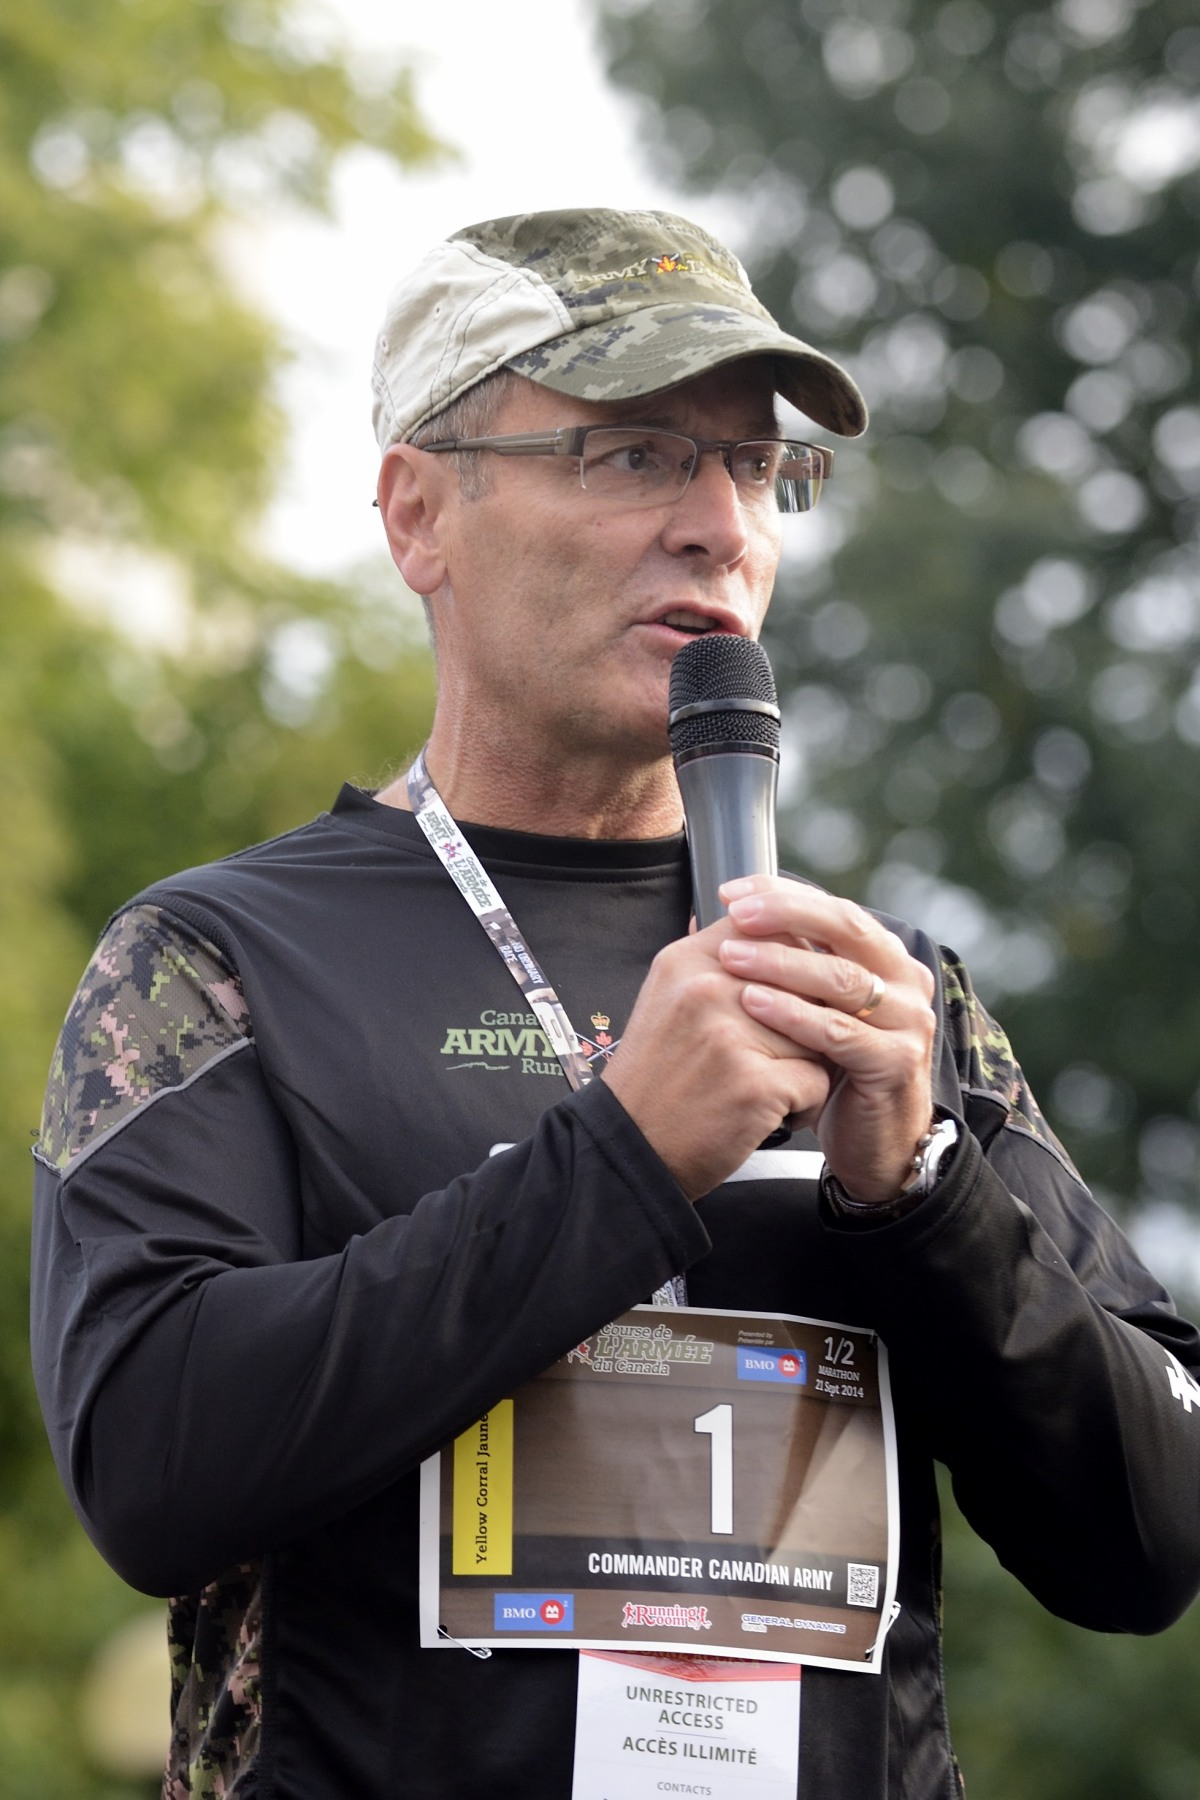 Lieutenant-General Marquis Hainse, Commander of the Canadian Army, addressed the thousands of participants before the race.